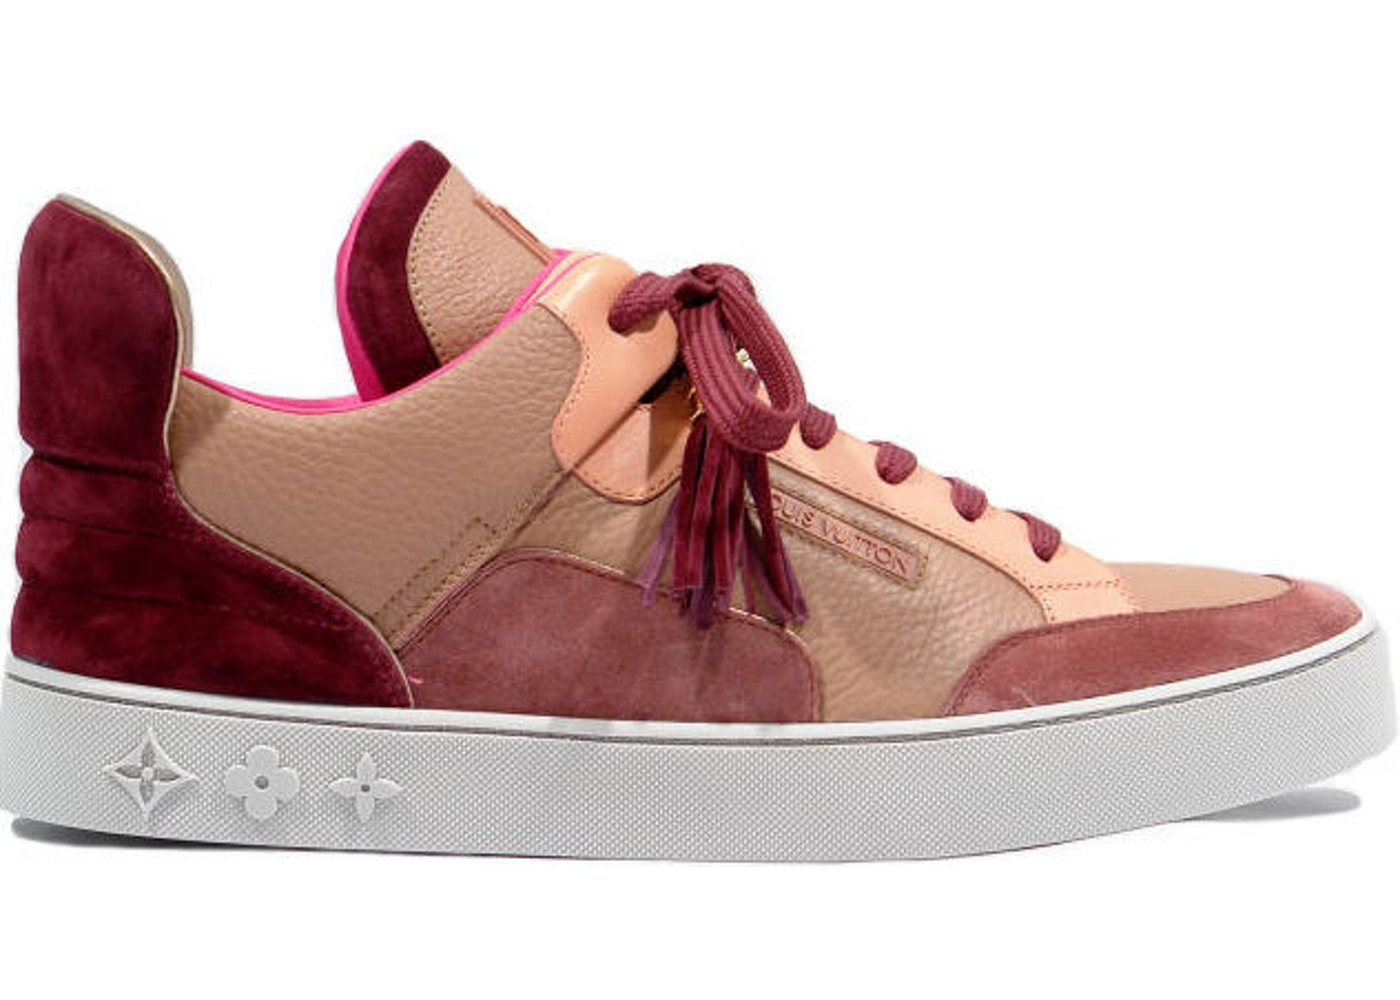 new arrival 28241 b7db0 Louis Vuitton Dons Kanye Patchwork